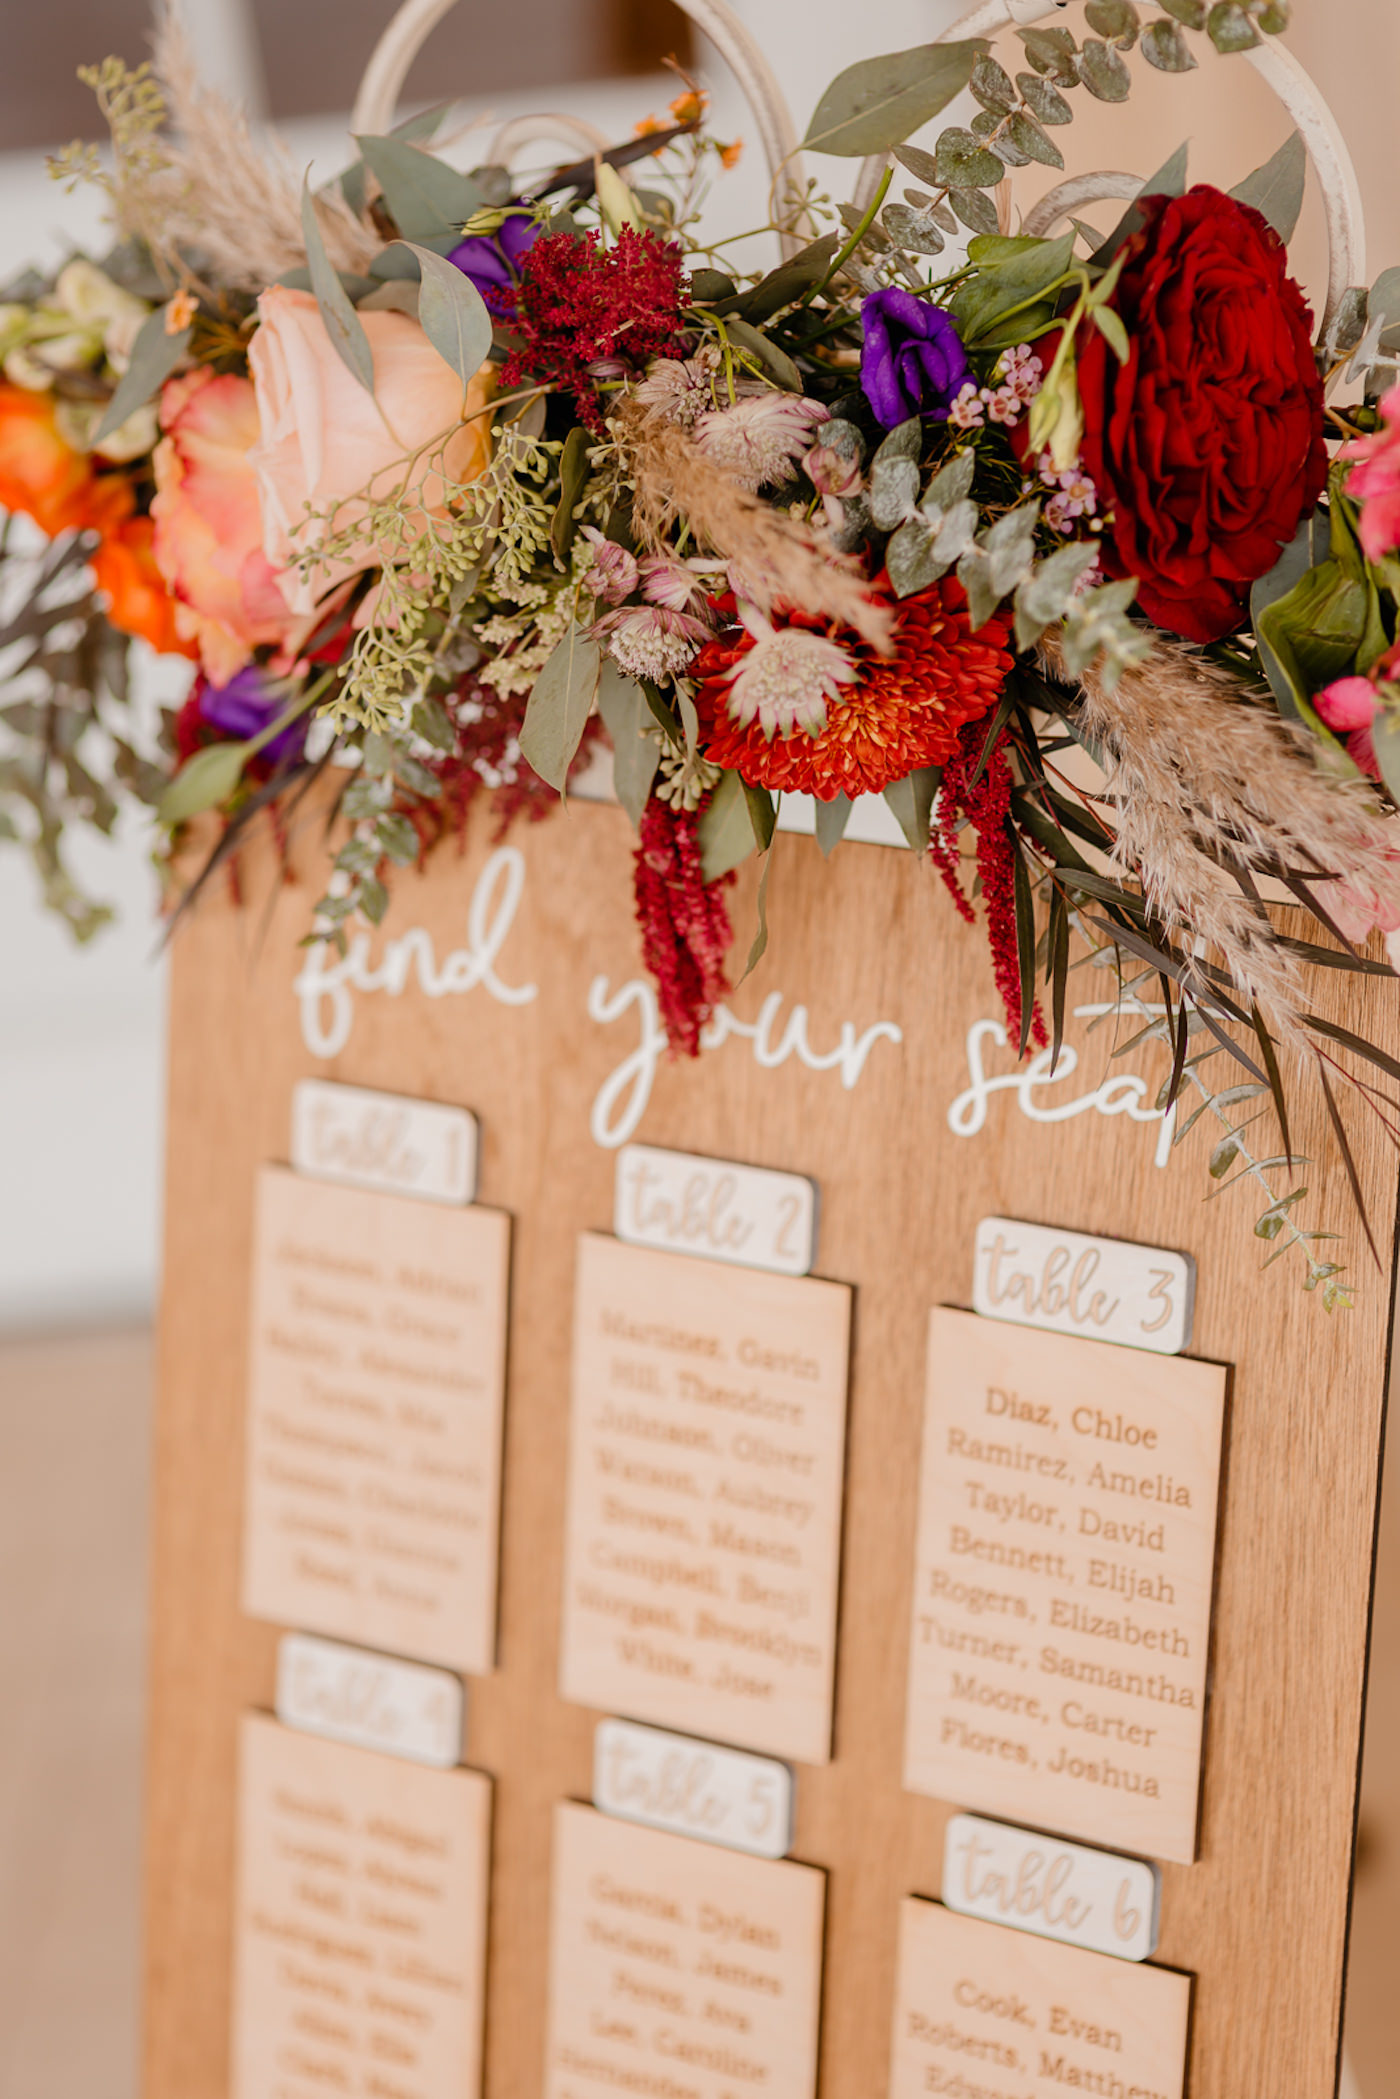 Boho Glam Wedding Inspiration | Etched Wood Seating Chart Unique Table Plan Alternative | Jewel Tone Floral Arrangement with Roses, Eucalyptus and Pampas Grass